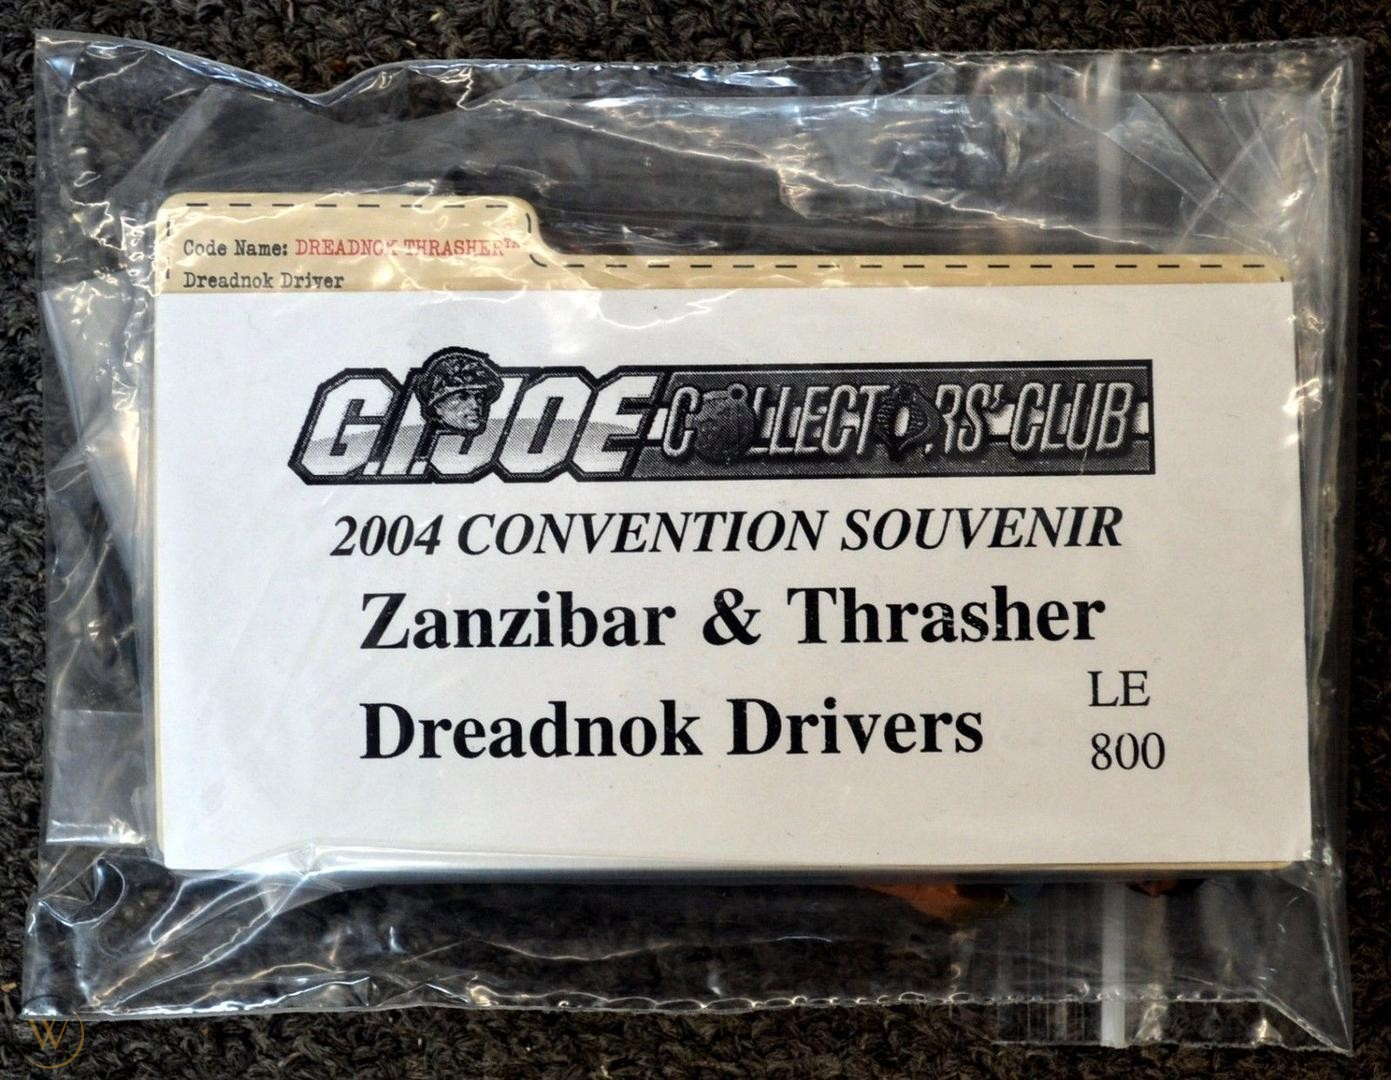 gi-joe-2004-joecon-convention_1_f1fefe72e2bc600af16993c4bb711932.jpg